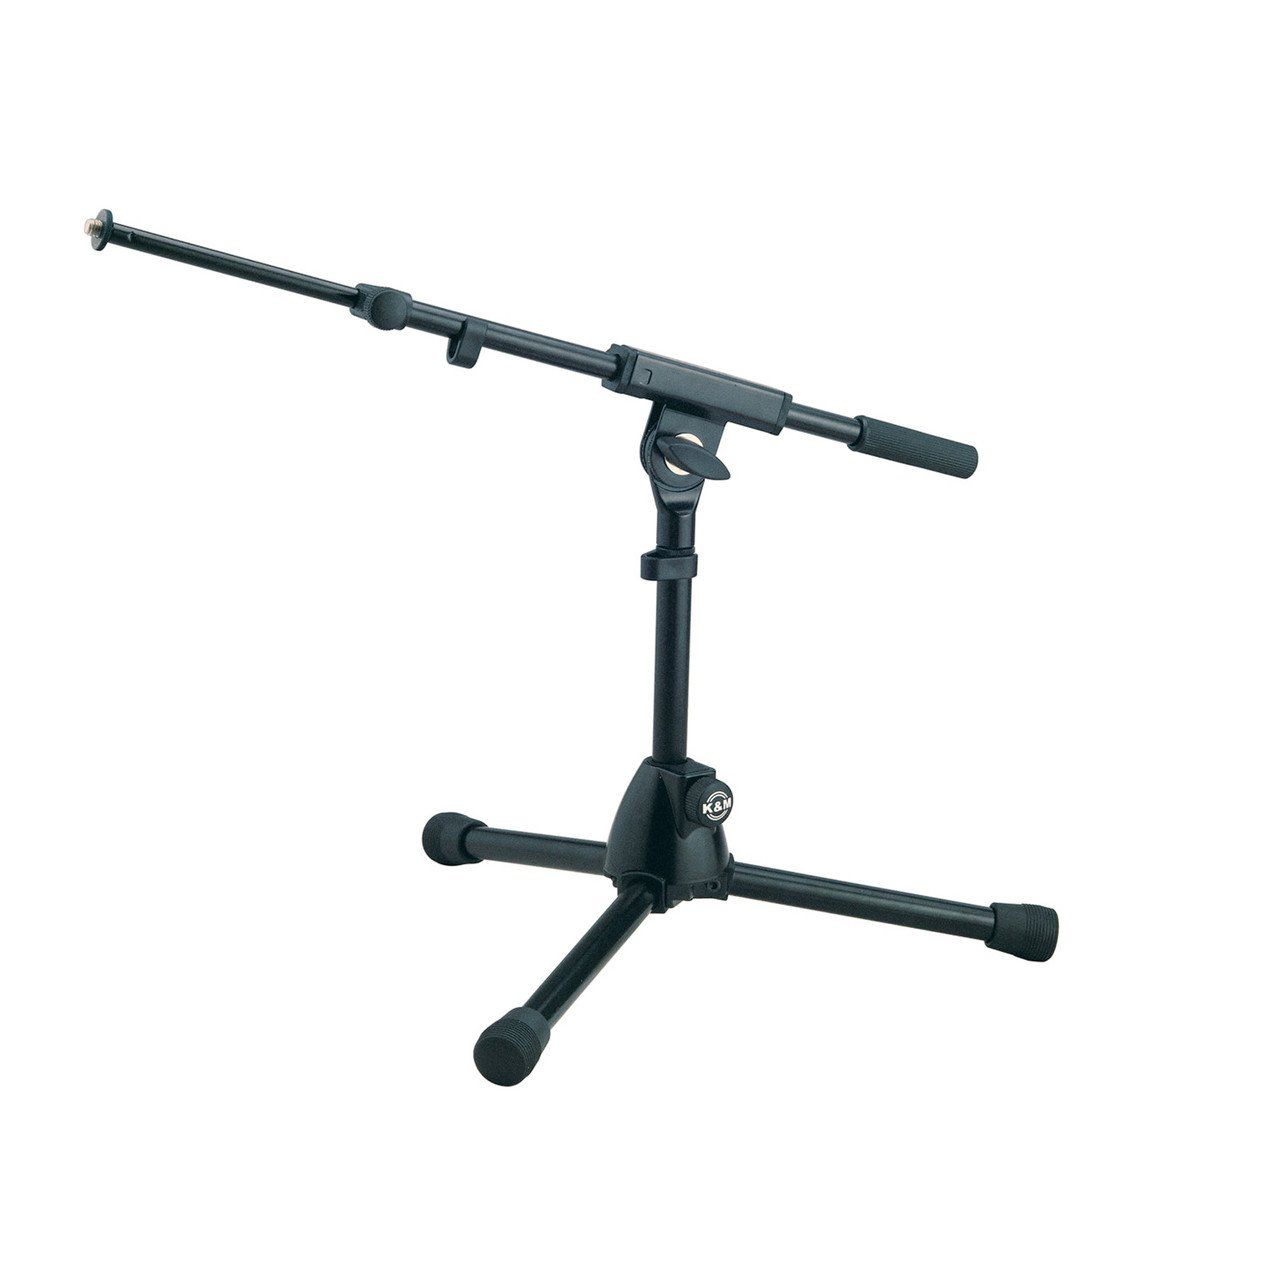 Microphone Accessories - Konig & Meyer 25950 Heavy Duty Short Microphone Stand With Telescopic Boom